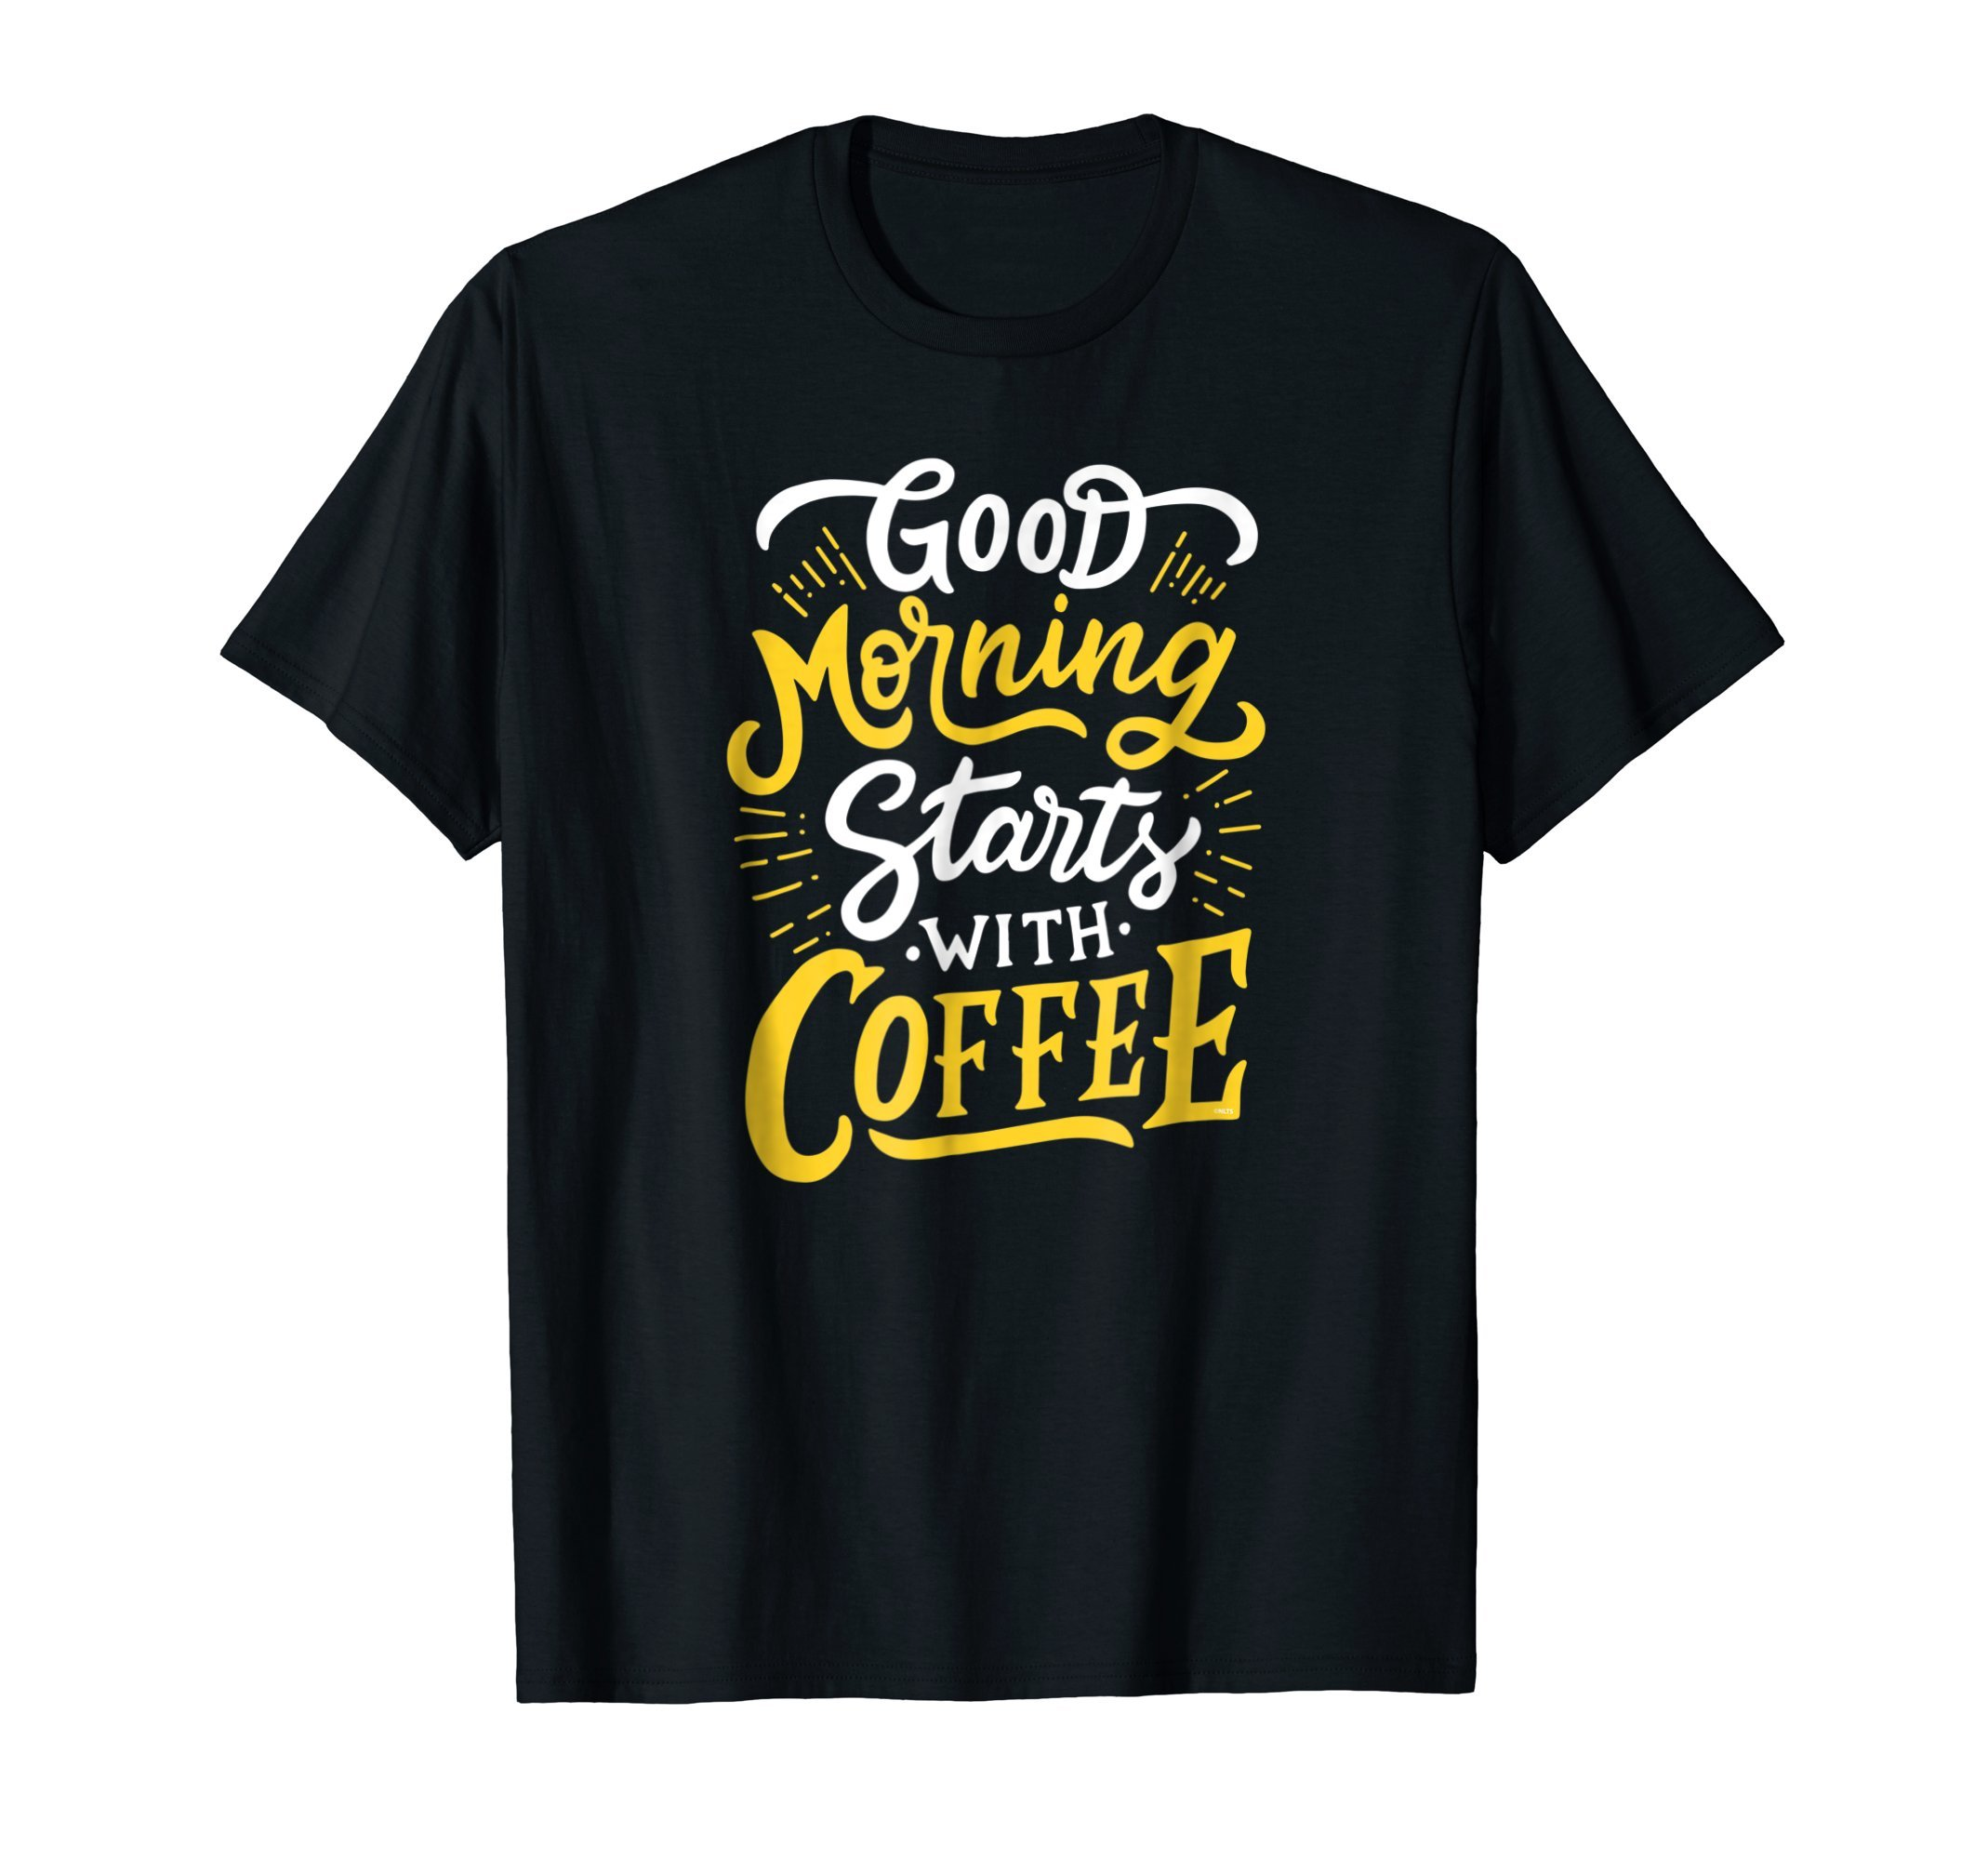 Good-Morning-Starts-with-Coffee-Funny-Humor-T-Shirt-Tee-Gift